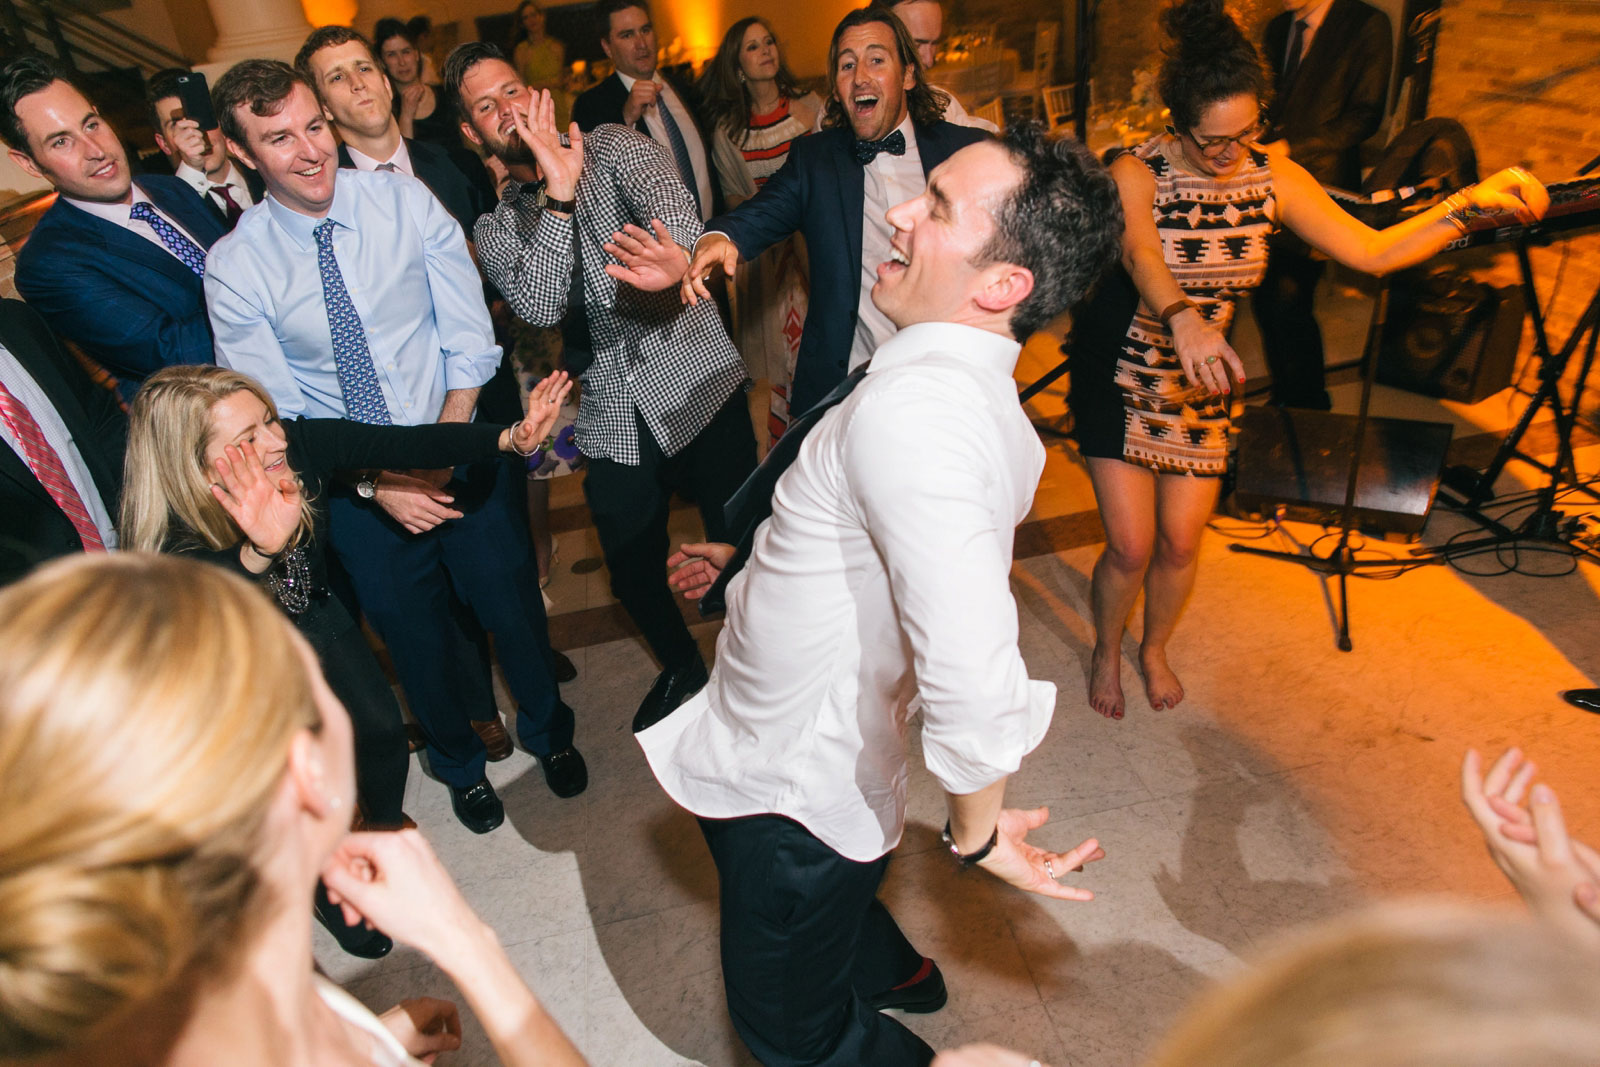 Groom dancing like crazy on dance floor at Boston Public Library wedding reception